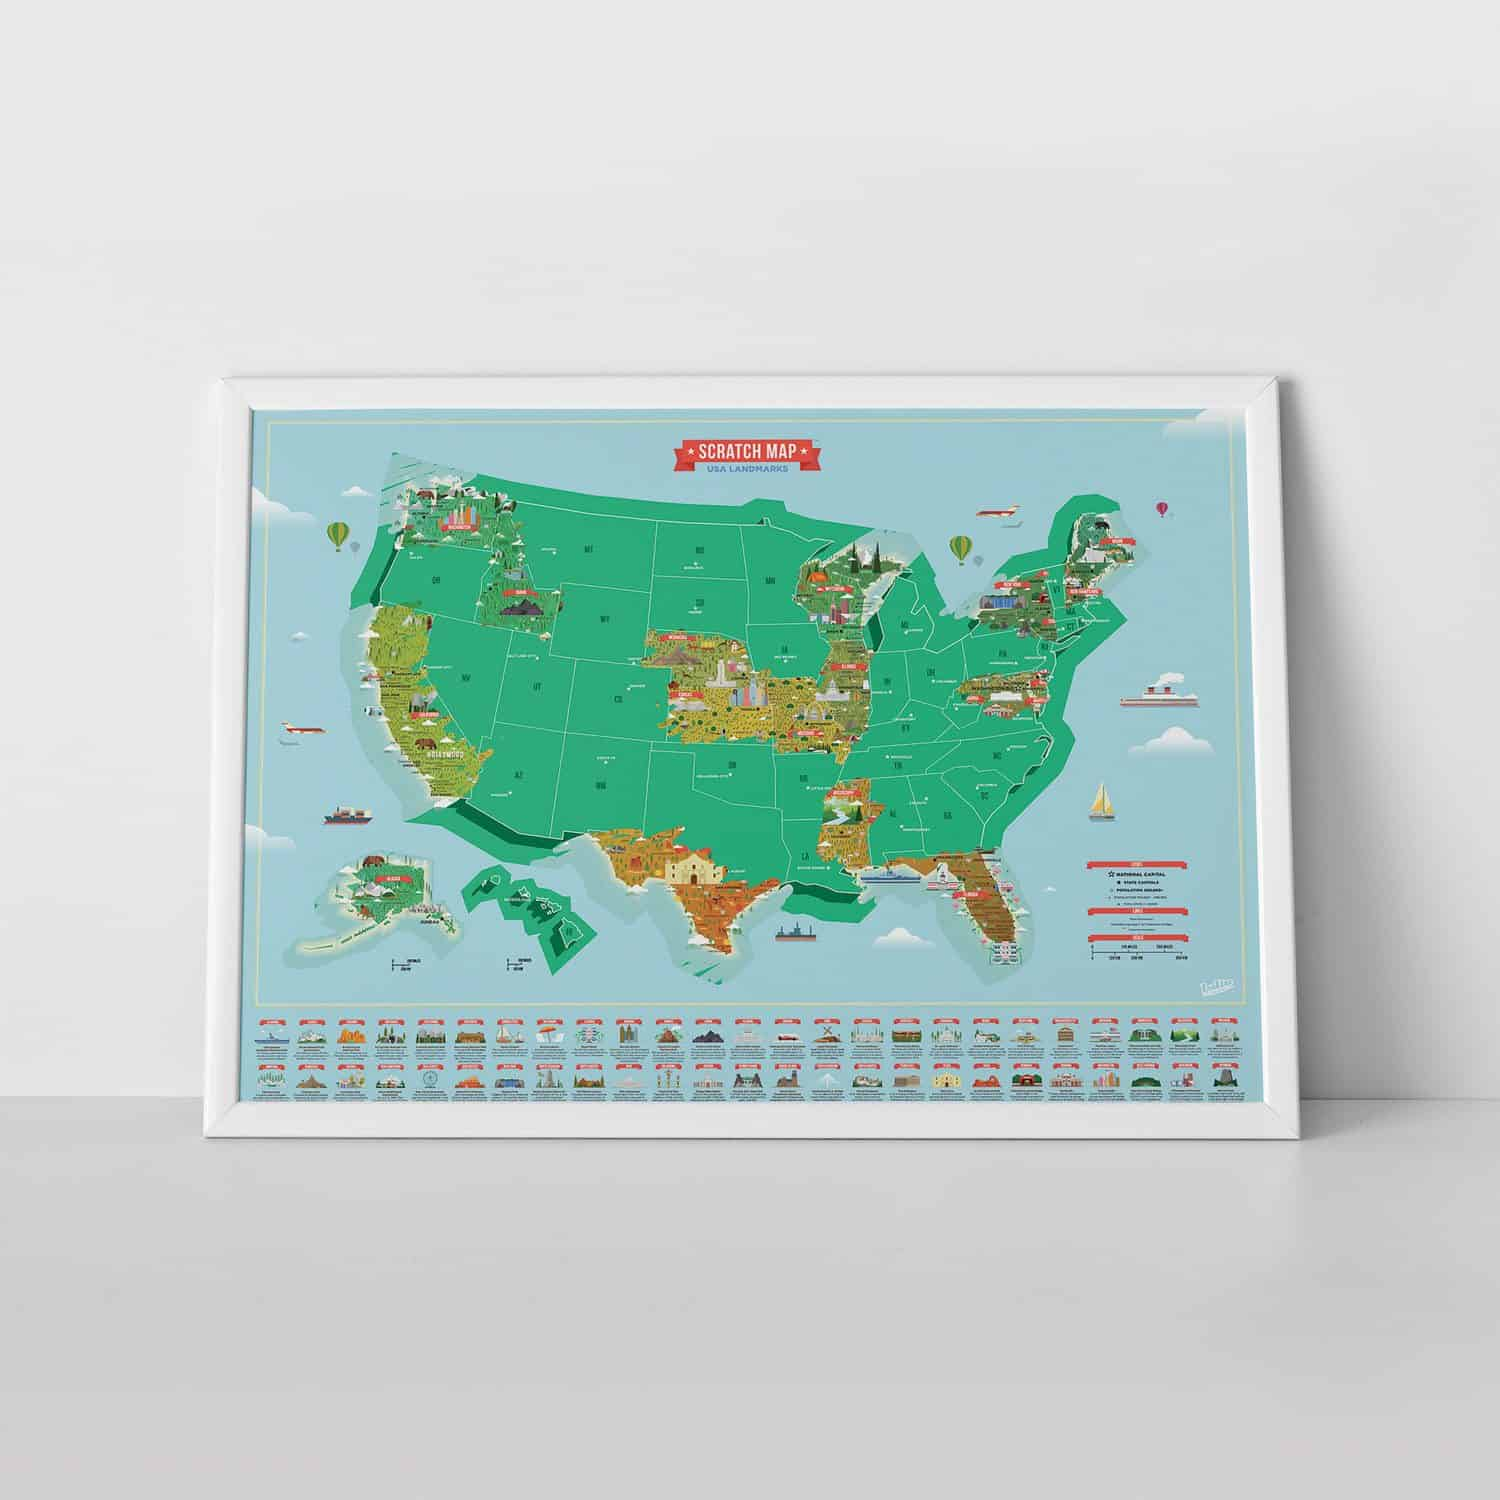 Scratch Map USA Landmarks Kraswereldkaart - Luckies